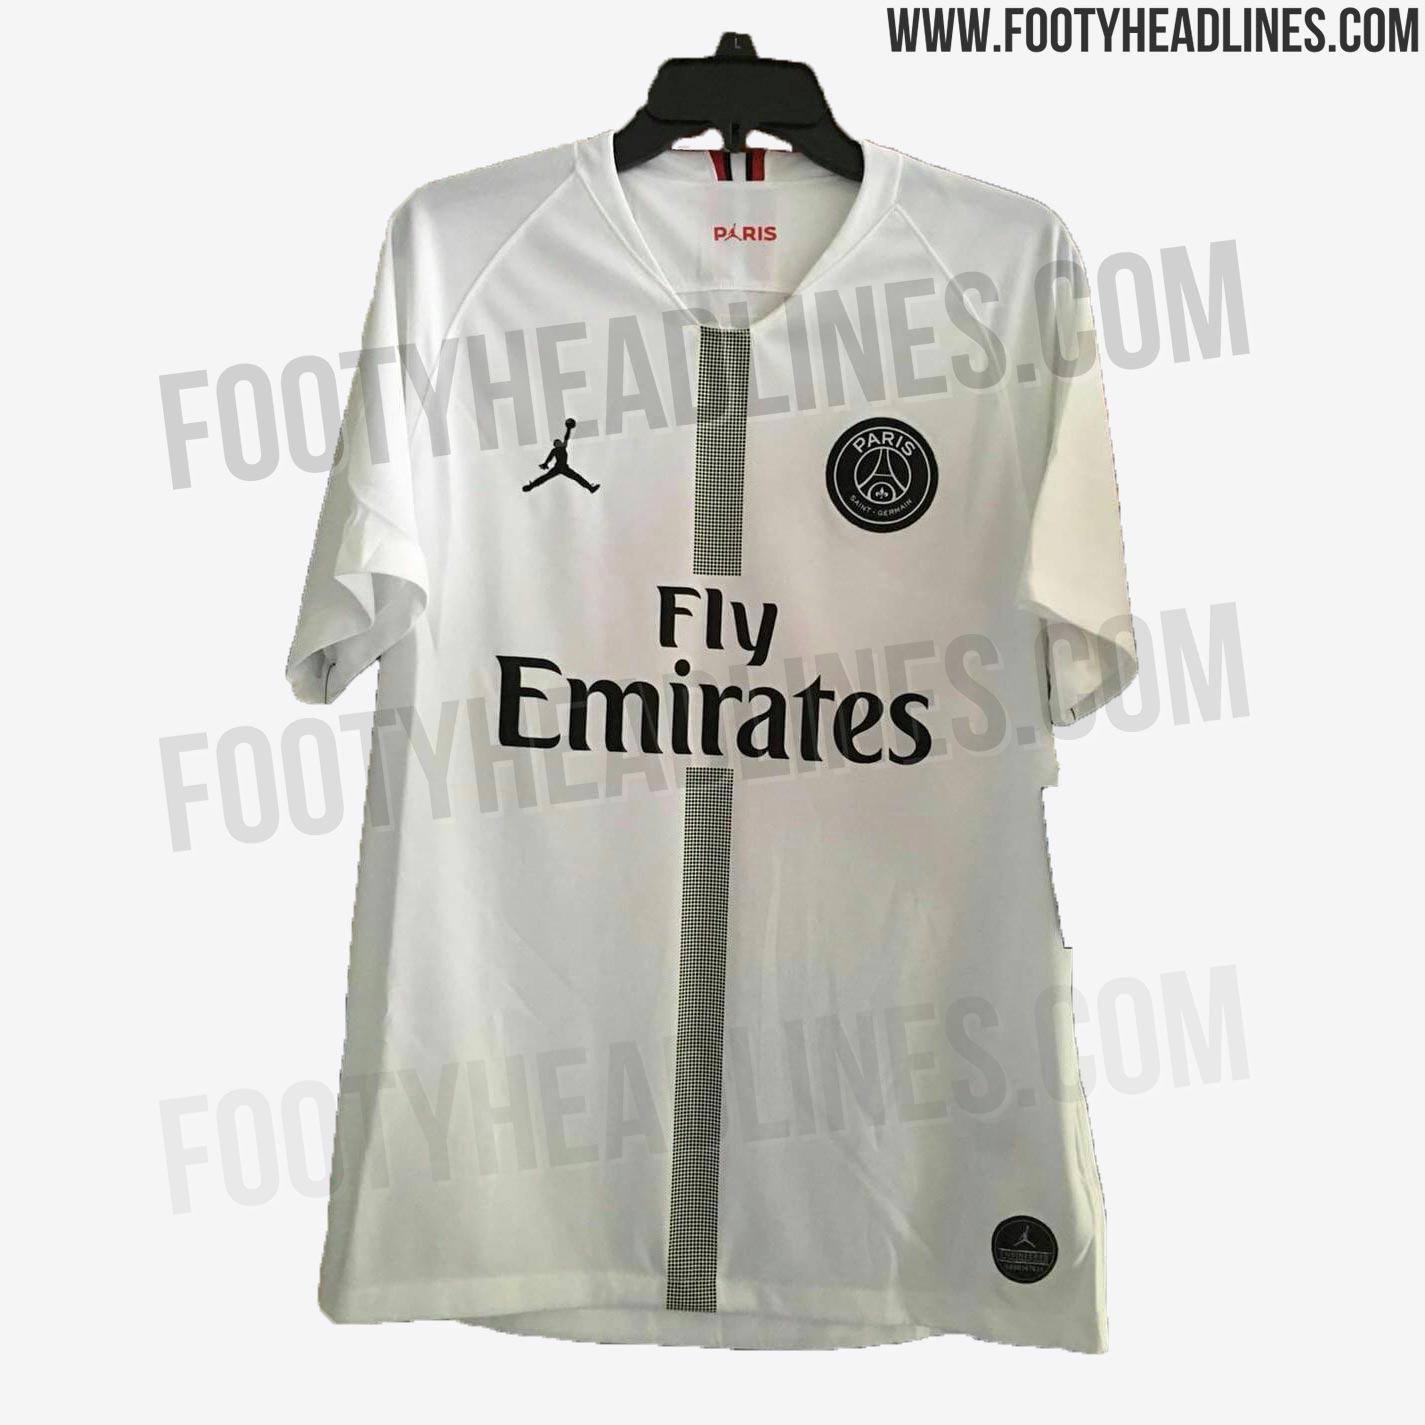 c1f70297951 The PSG Jordan player jersey is predominantly white with a dotted center  stripe running down on the front in black. The club crest is featured in a  ...